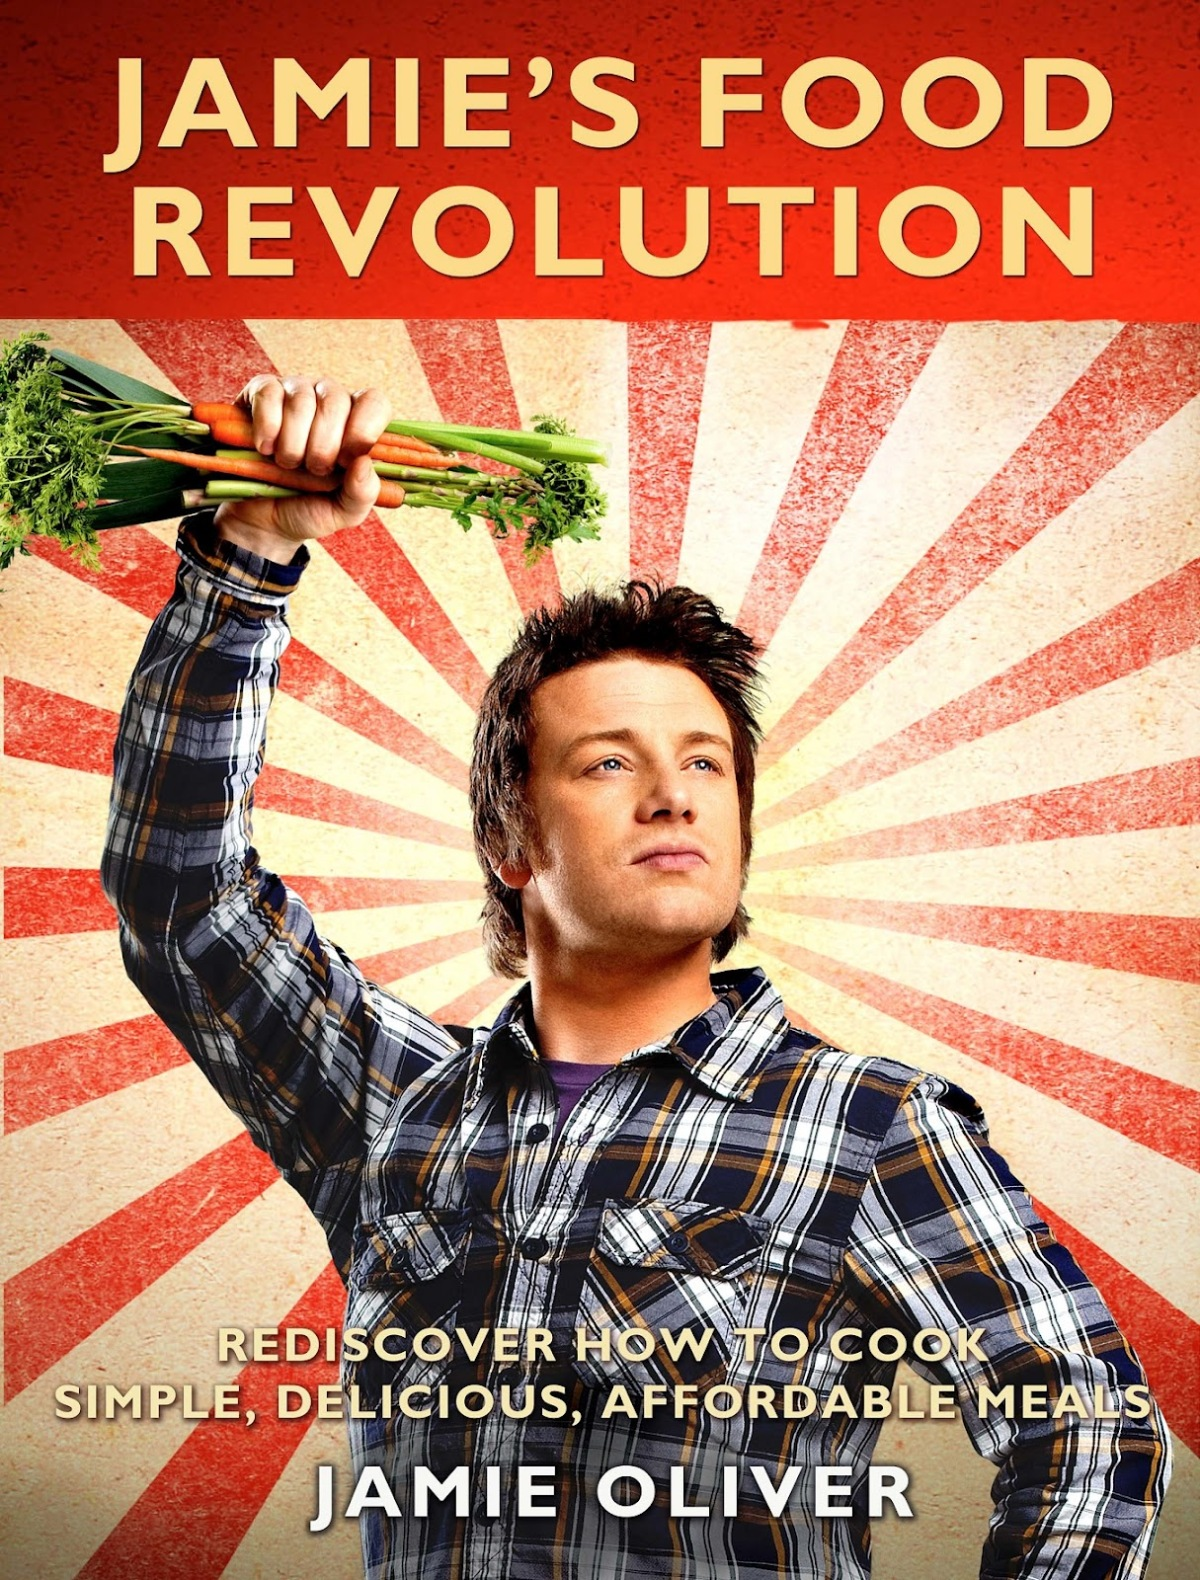 Book Cover of Jamie's Food Revolution